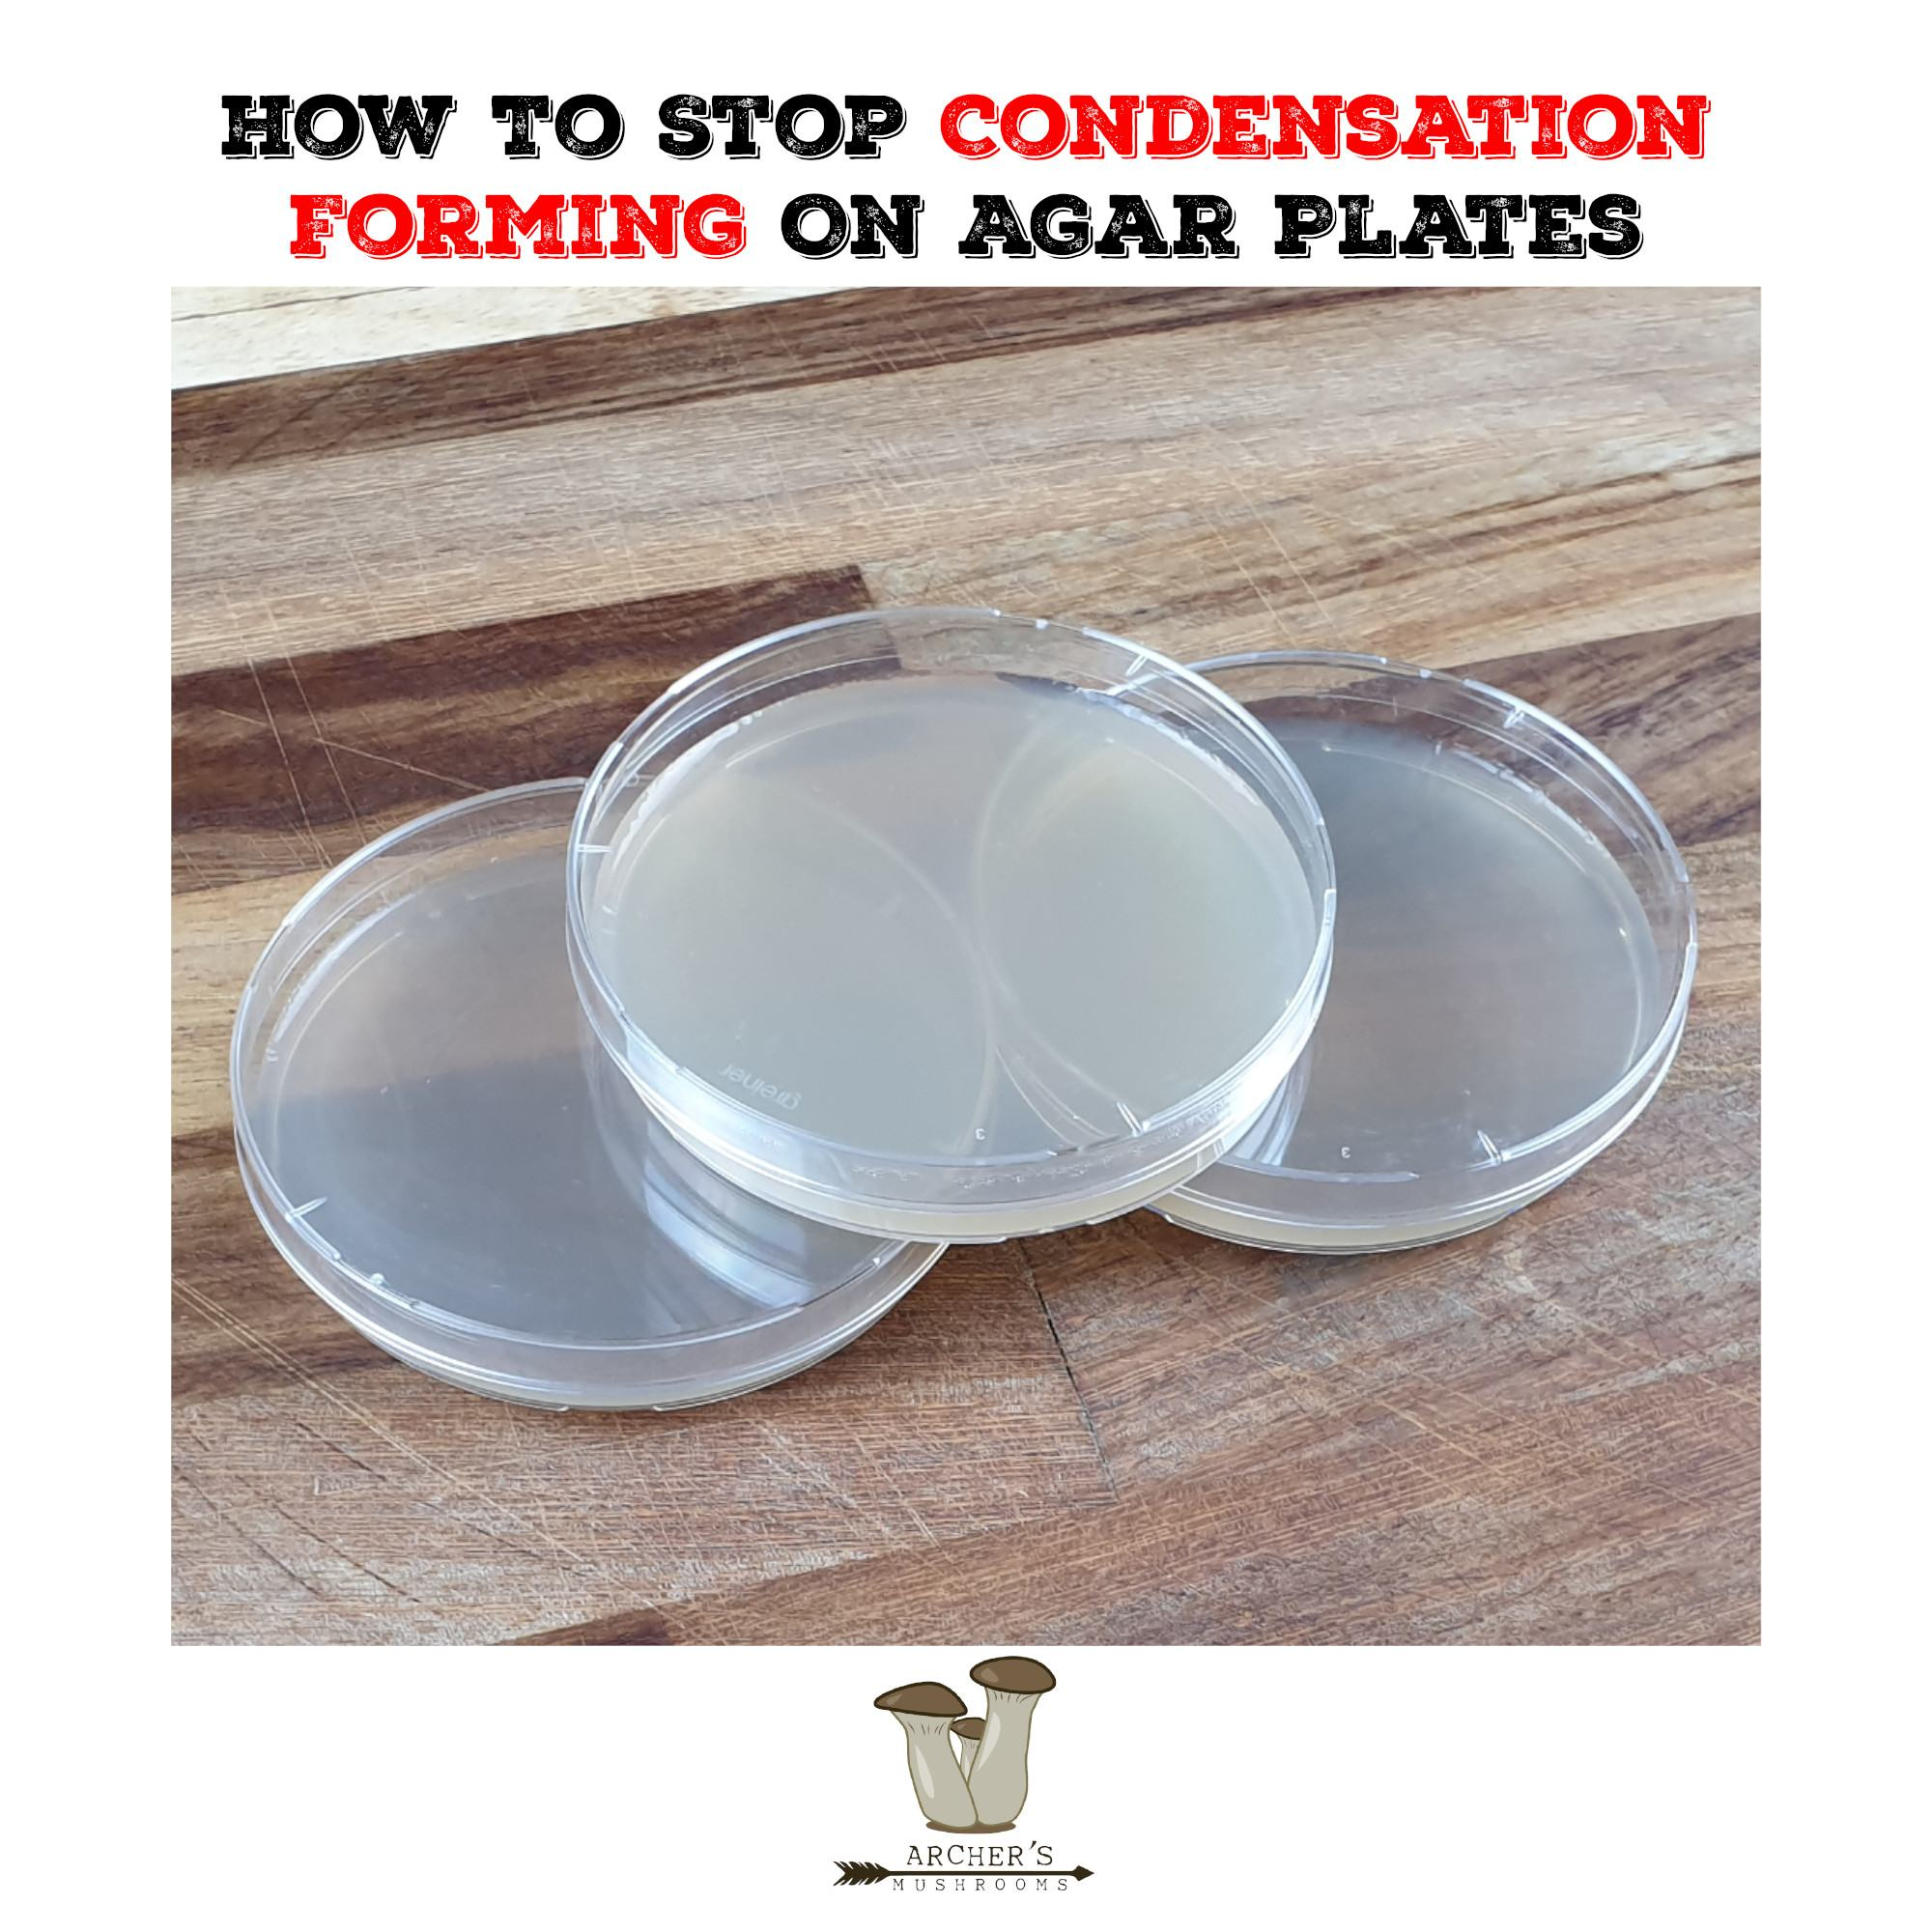 How To Stop Condensation Forming On Agar Plates | The Best Mushroom Foraging Books | Mushroom Growing | Mushroom Blogs | Mushroom Growing | Mushroom Tips | Mushroom Business